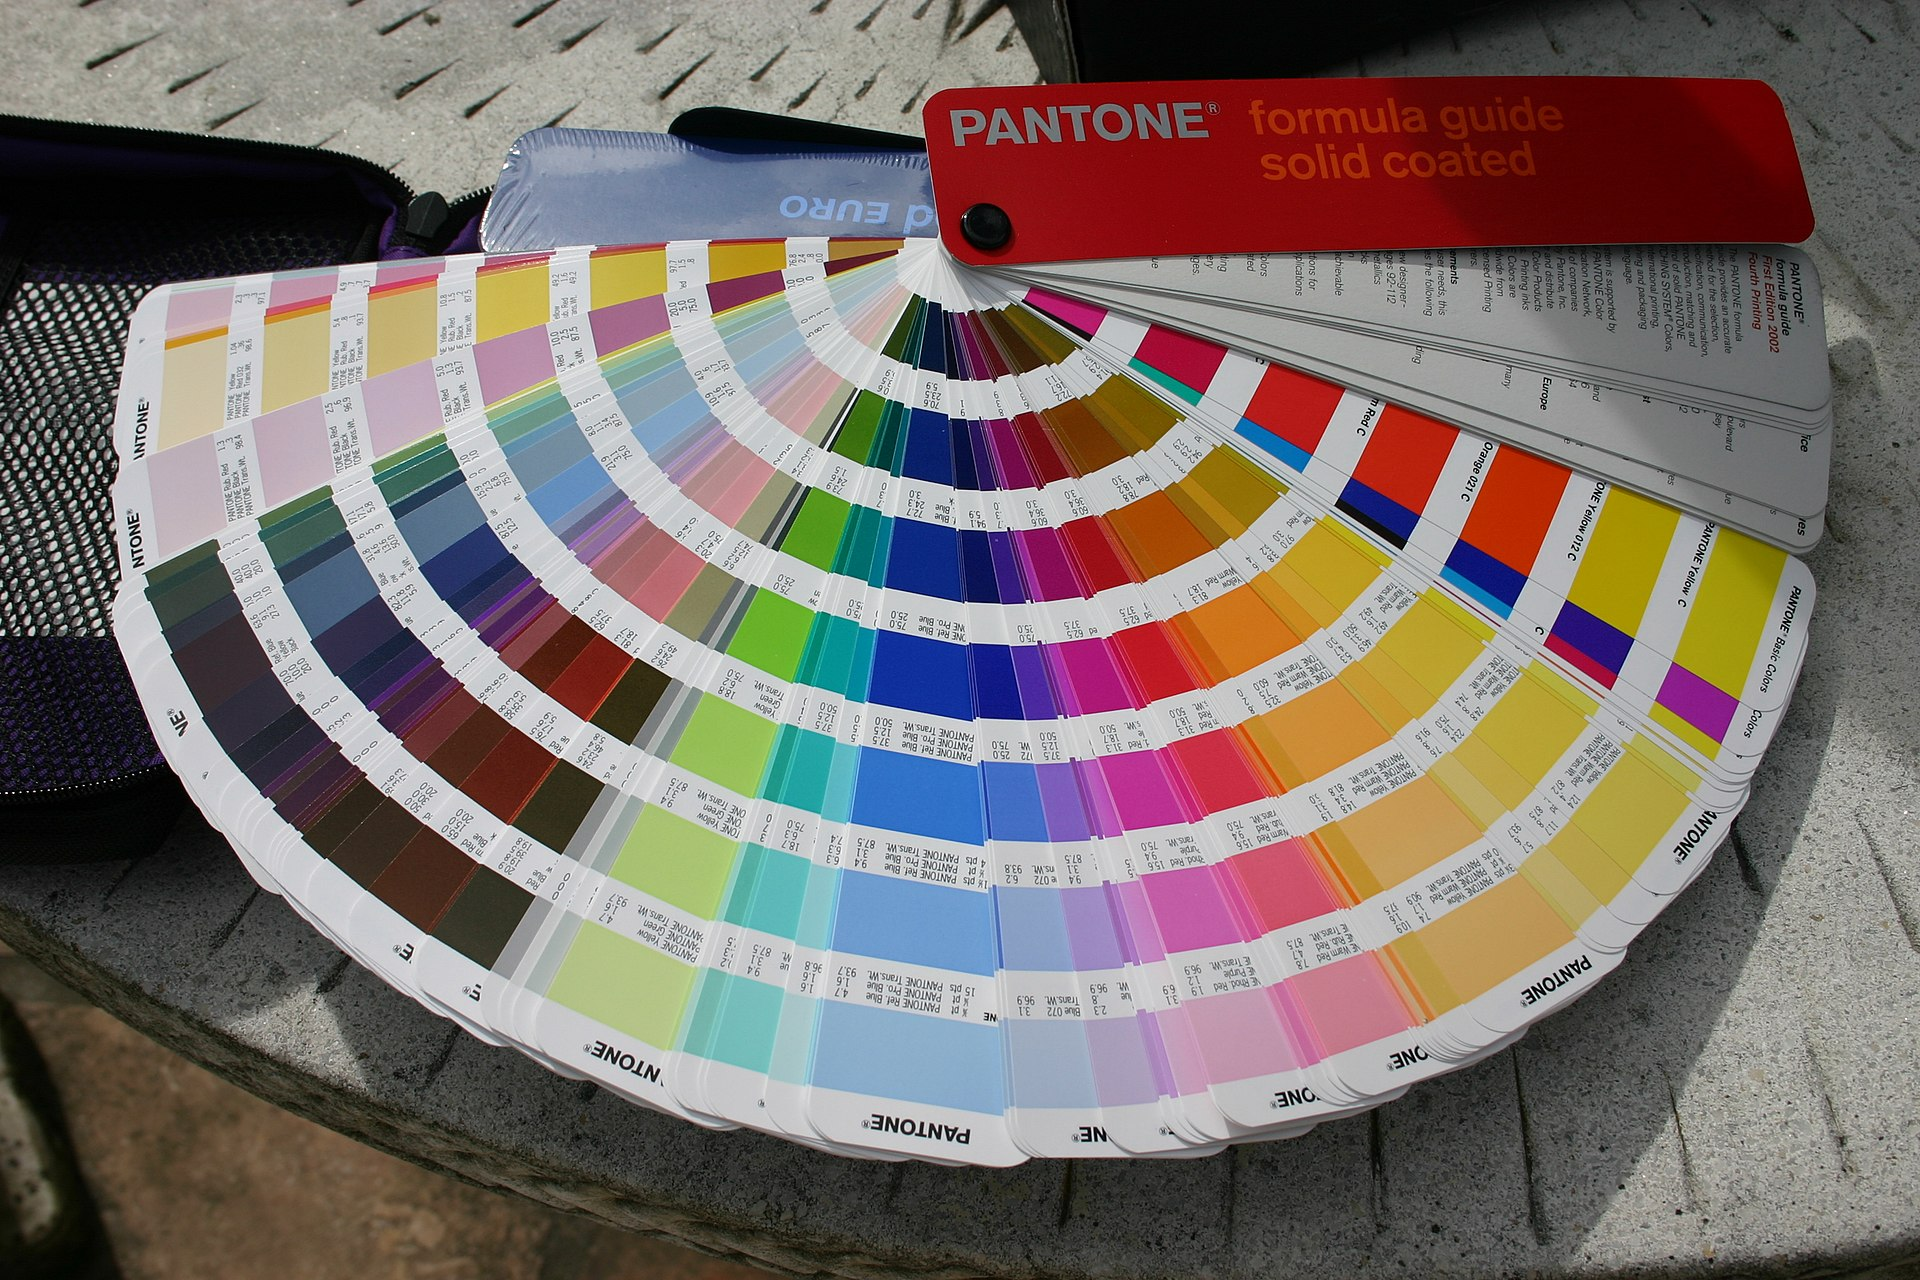 pantone matching system wikipedia. Black Bedroom Furniture Sets. Home Design Ideas